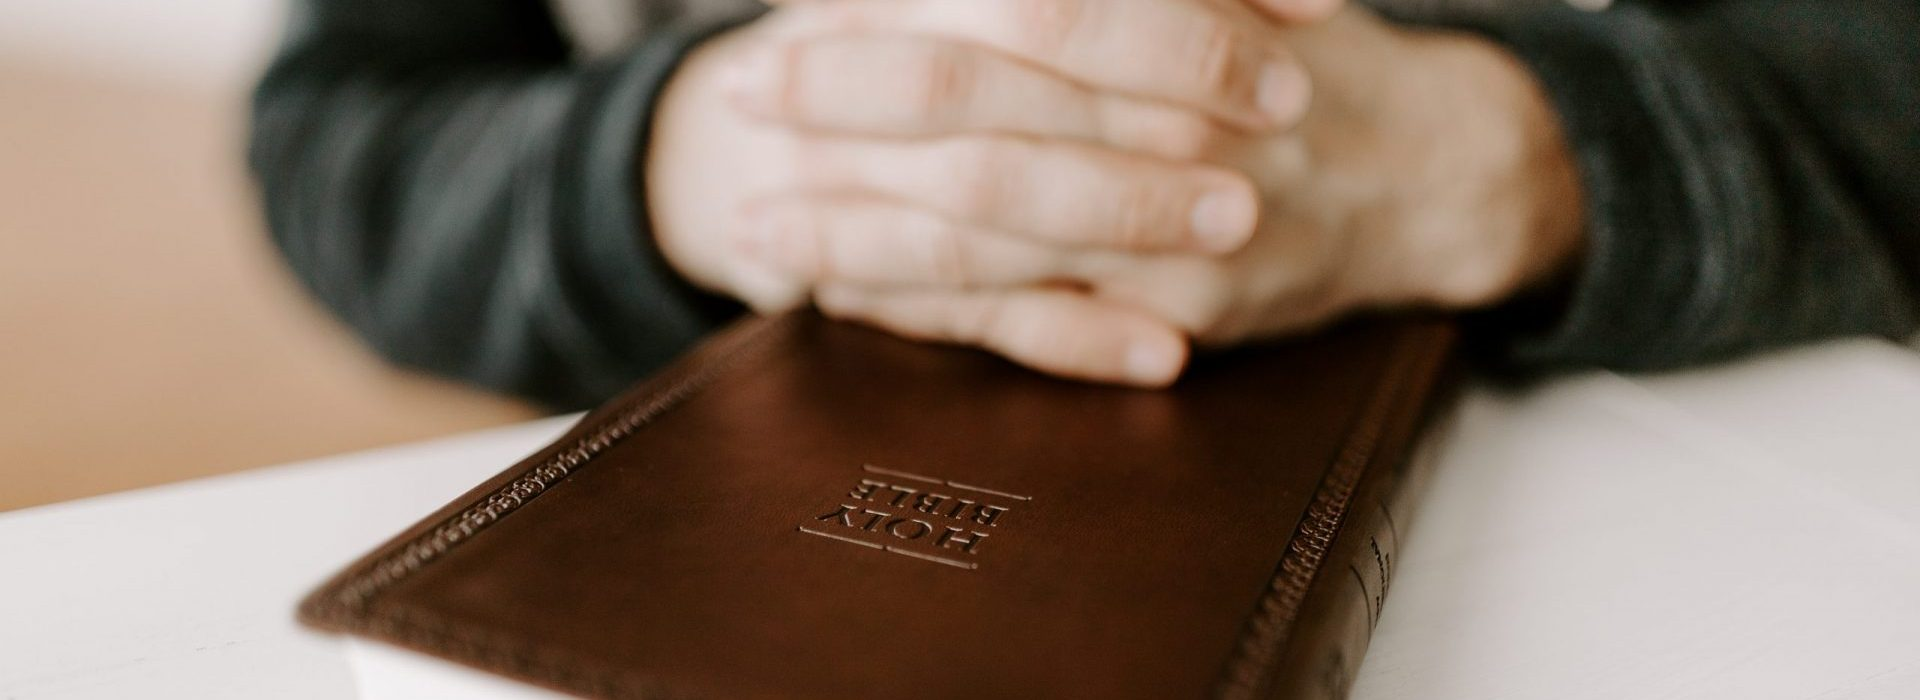 candlewood mens bible study group